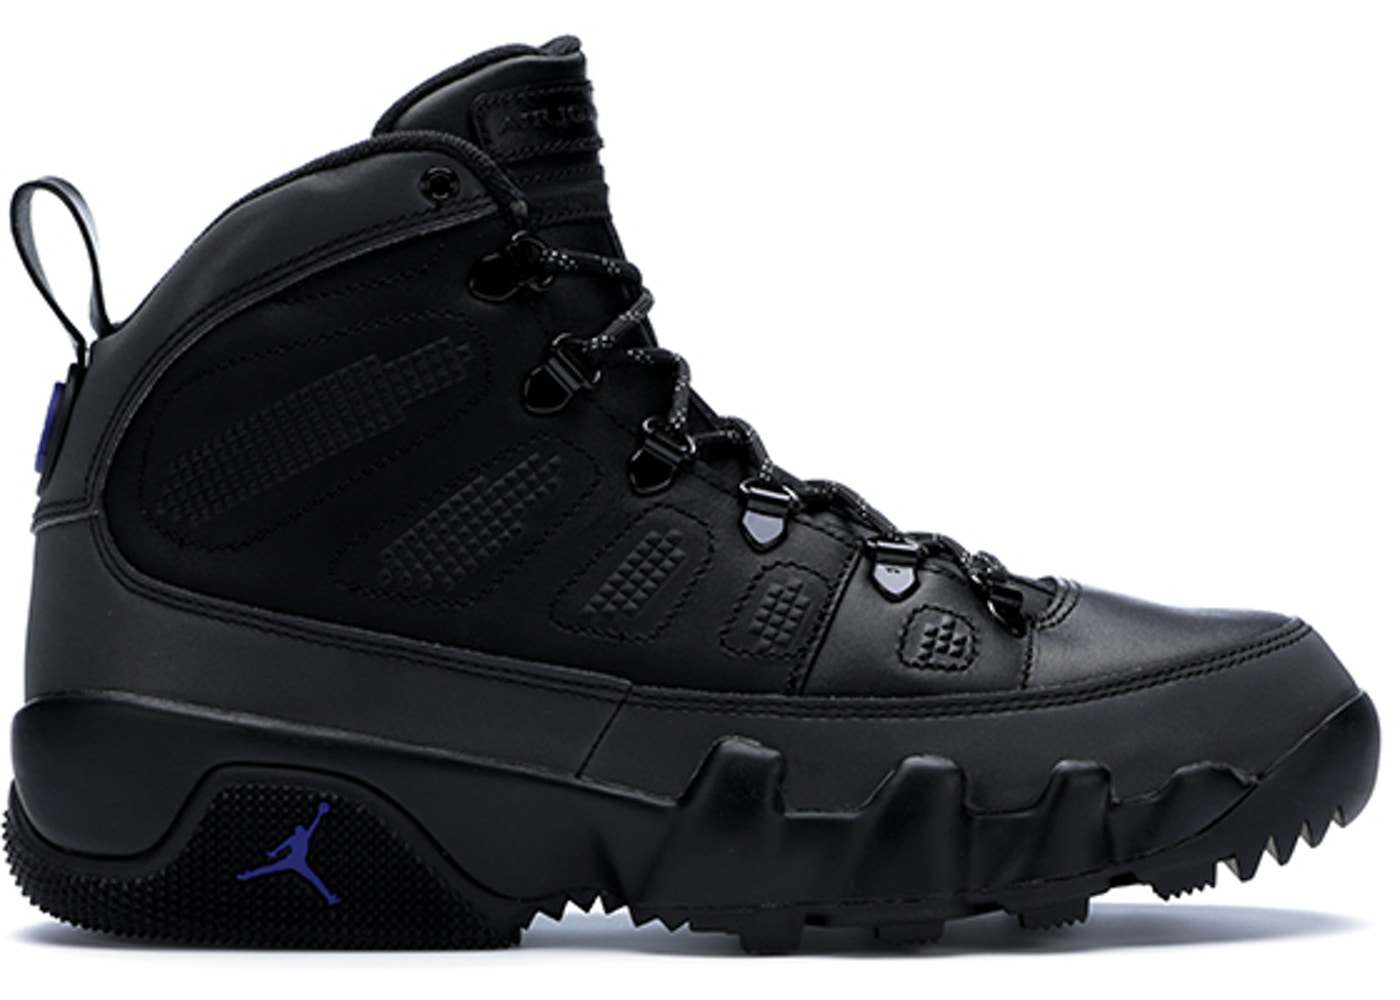 on sale 016e1 3920b Buy Air Jordan 9 Shoes & Deadstock Sneakers